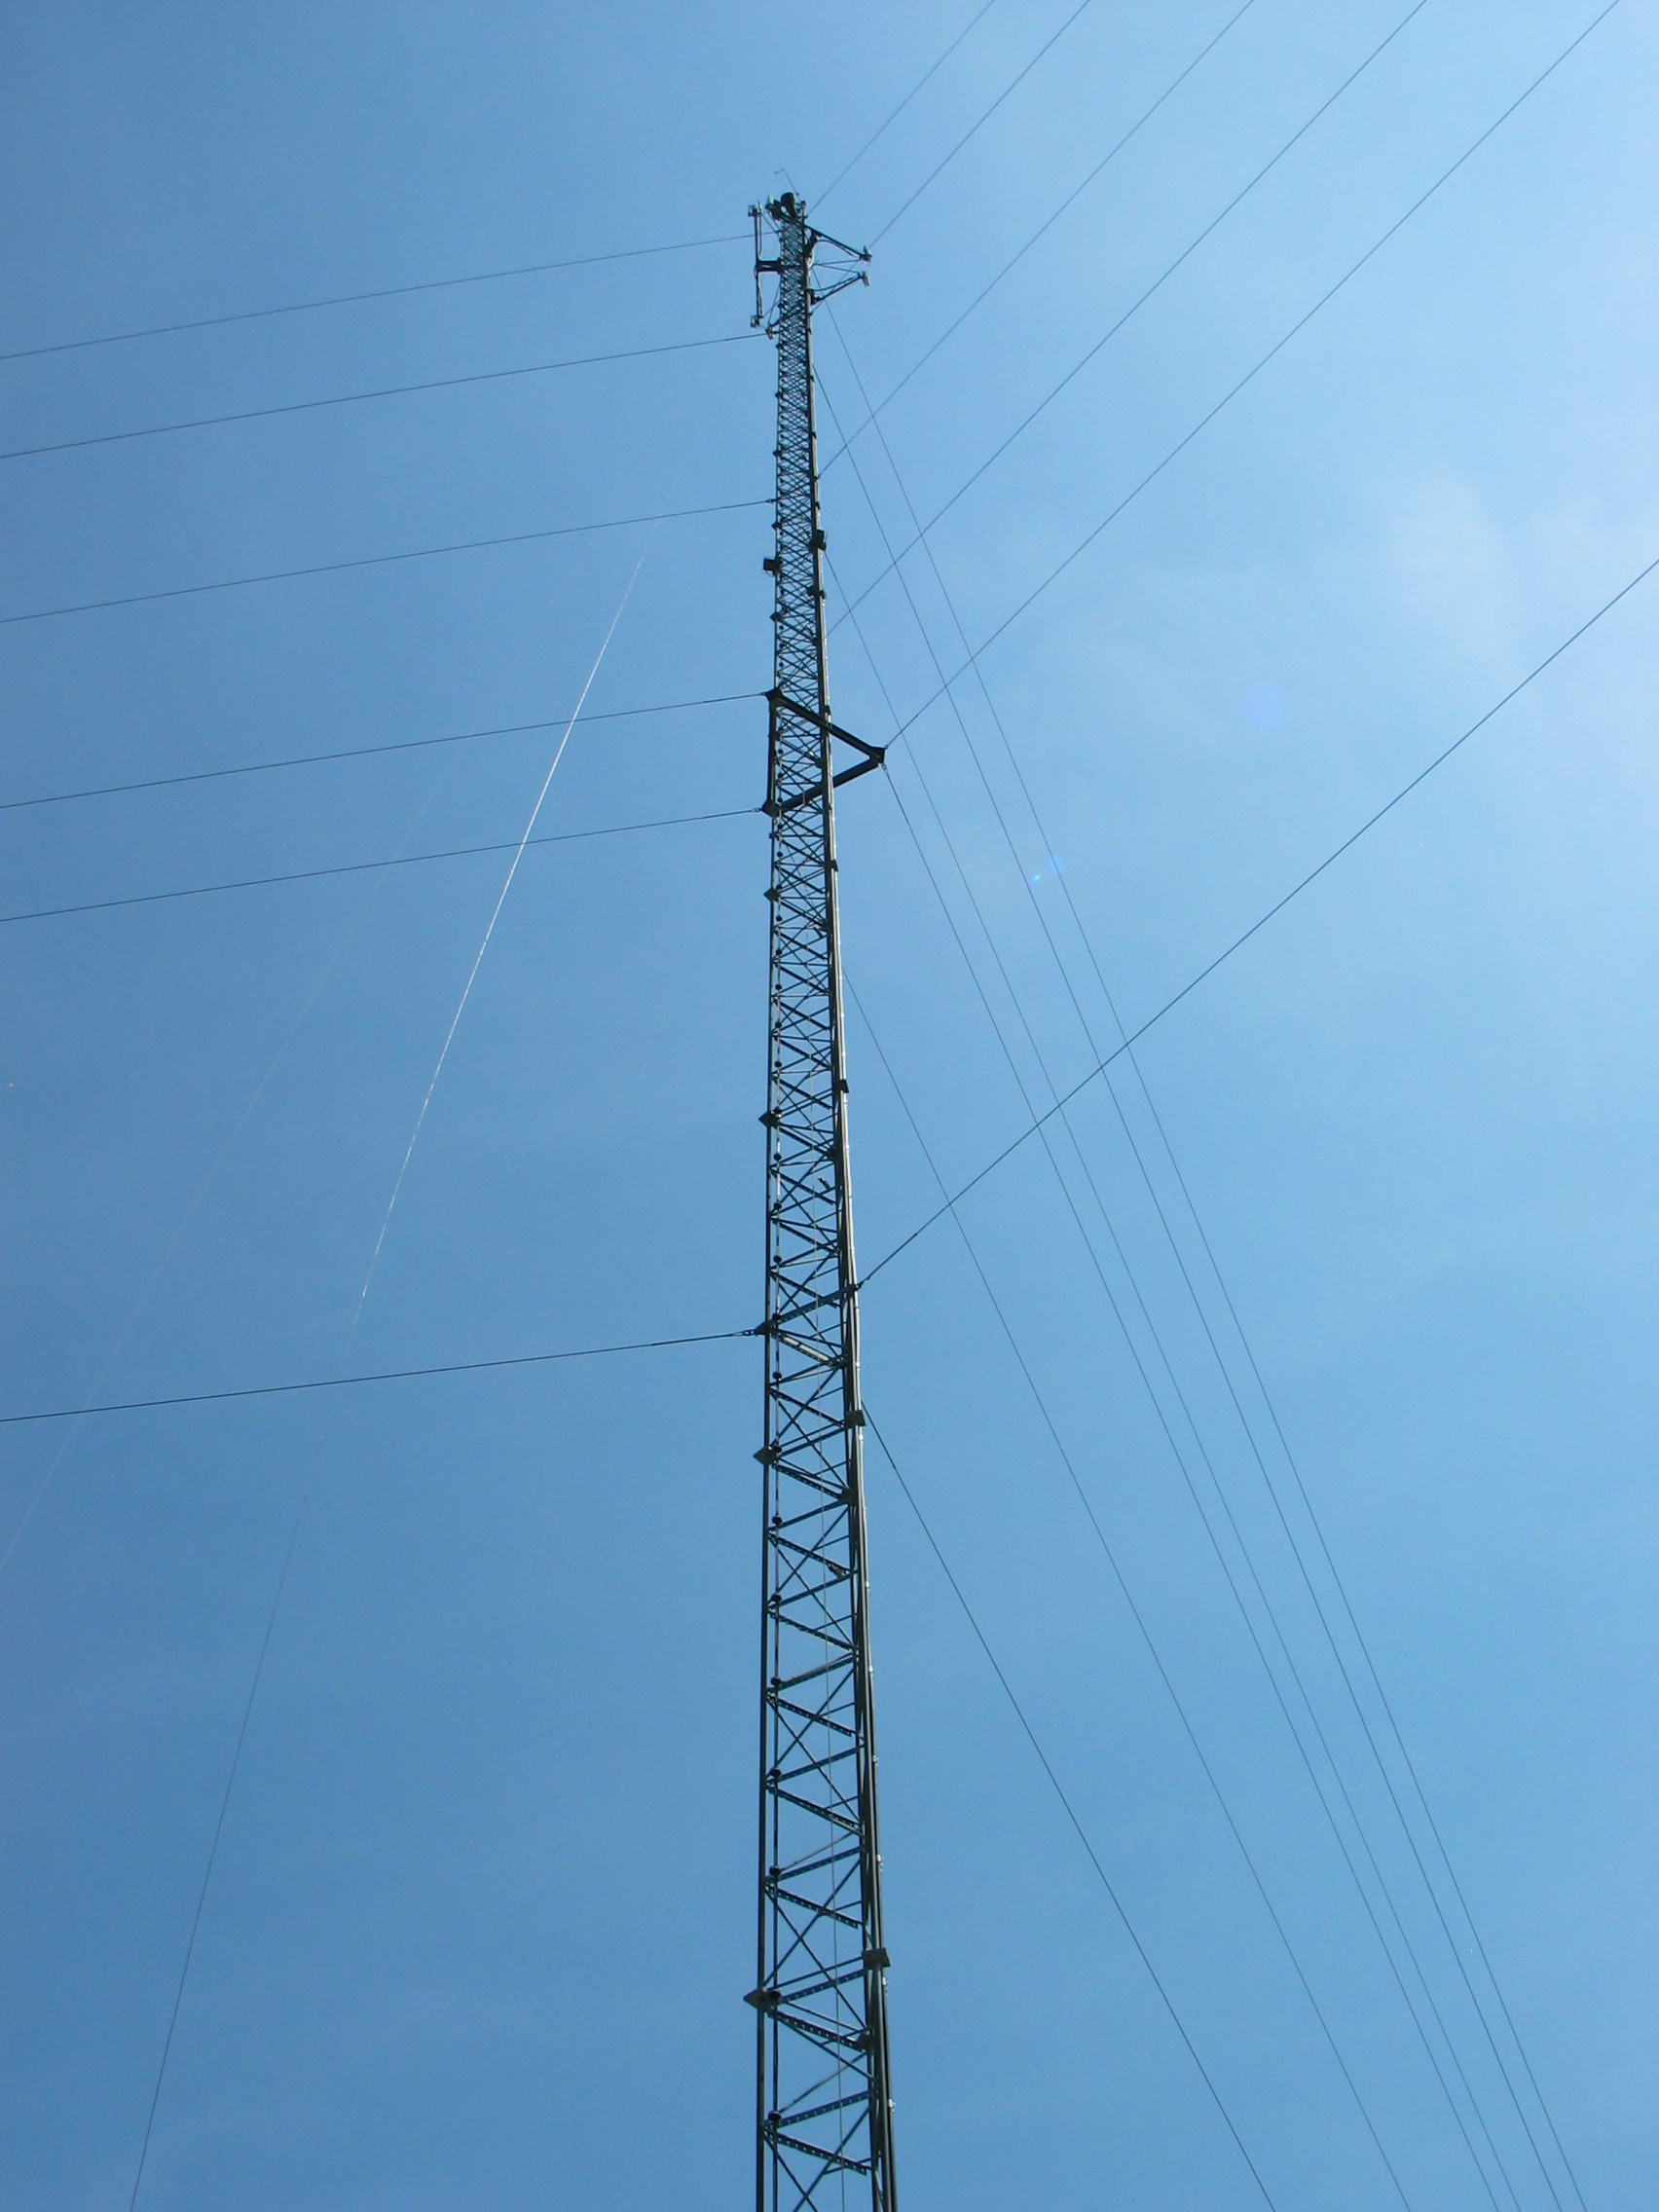 300' cell phone tower near Muscatine, Iowa